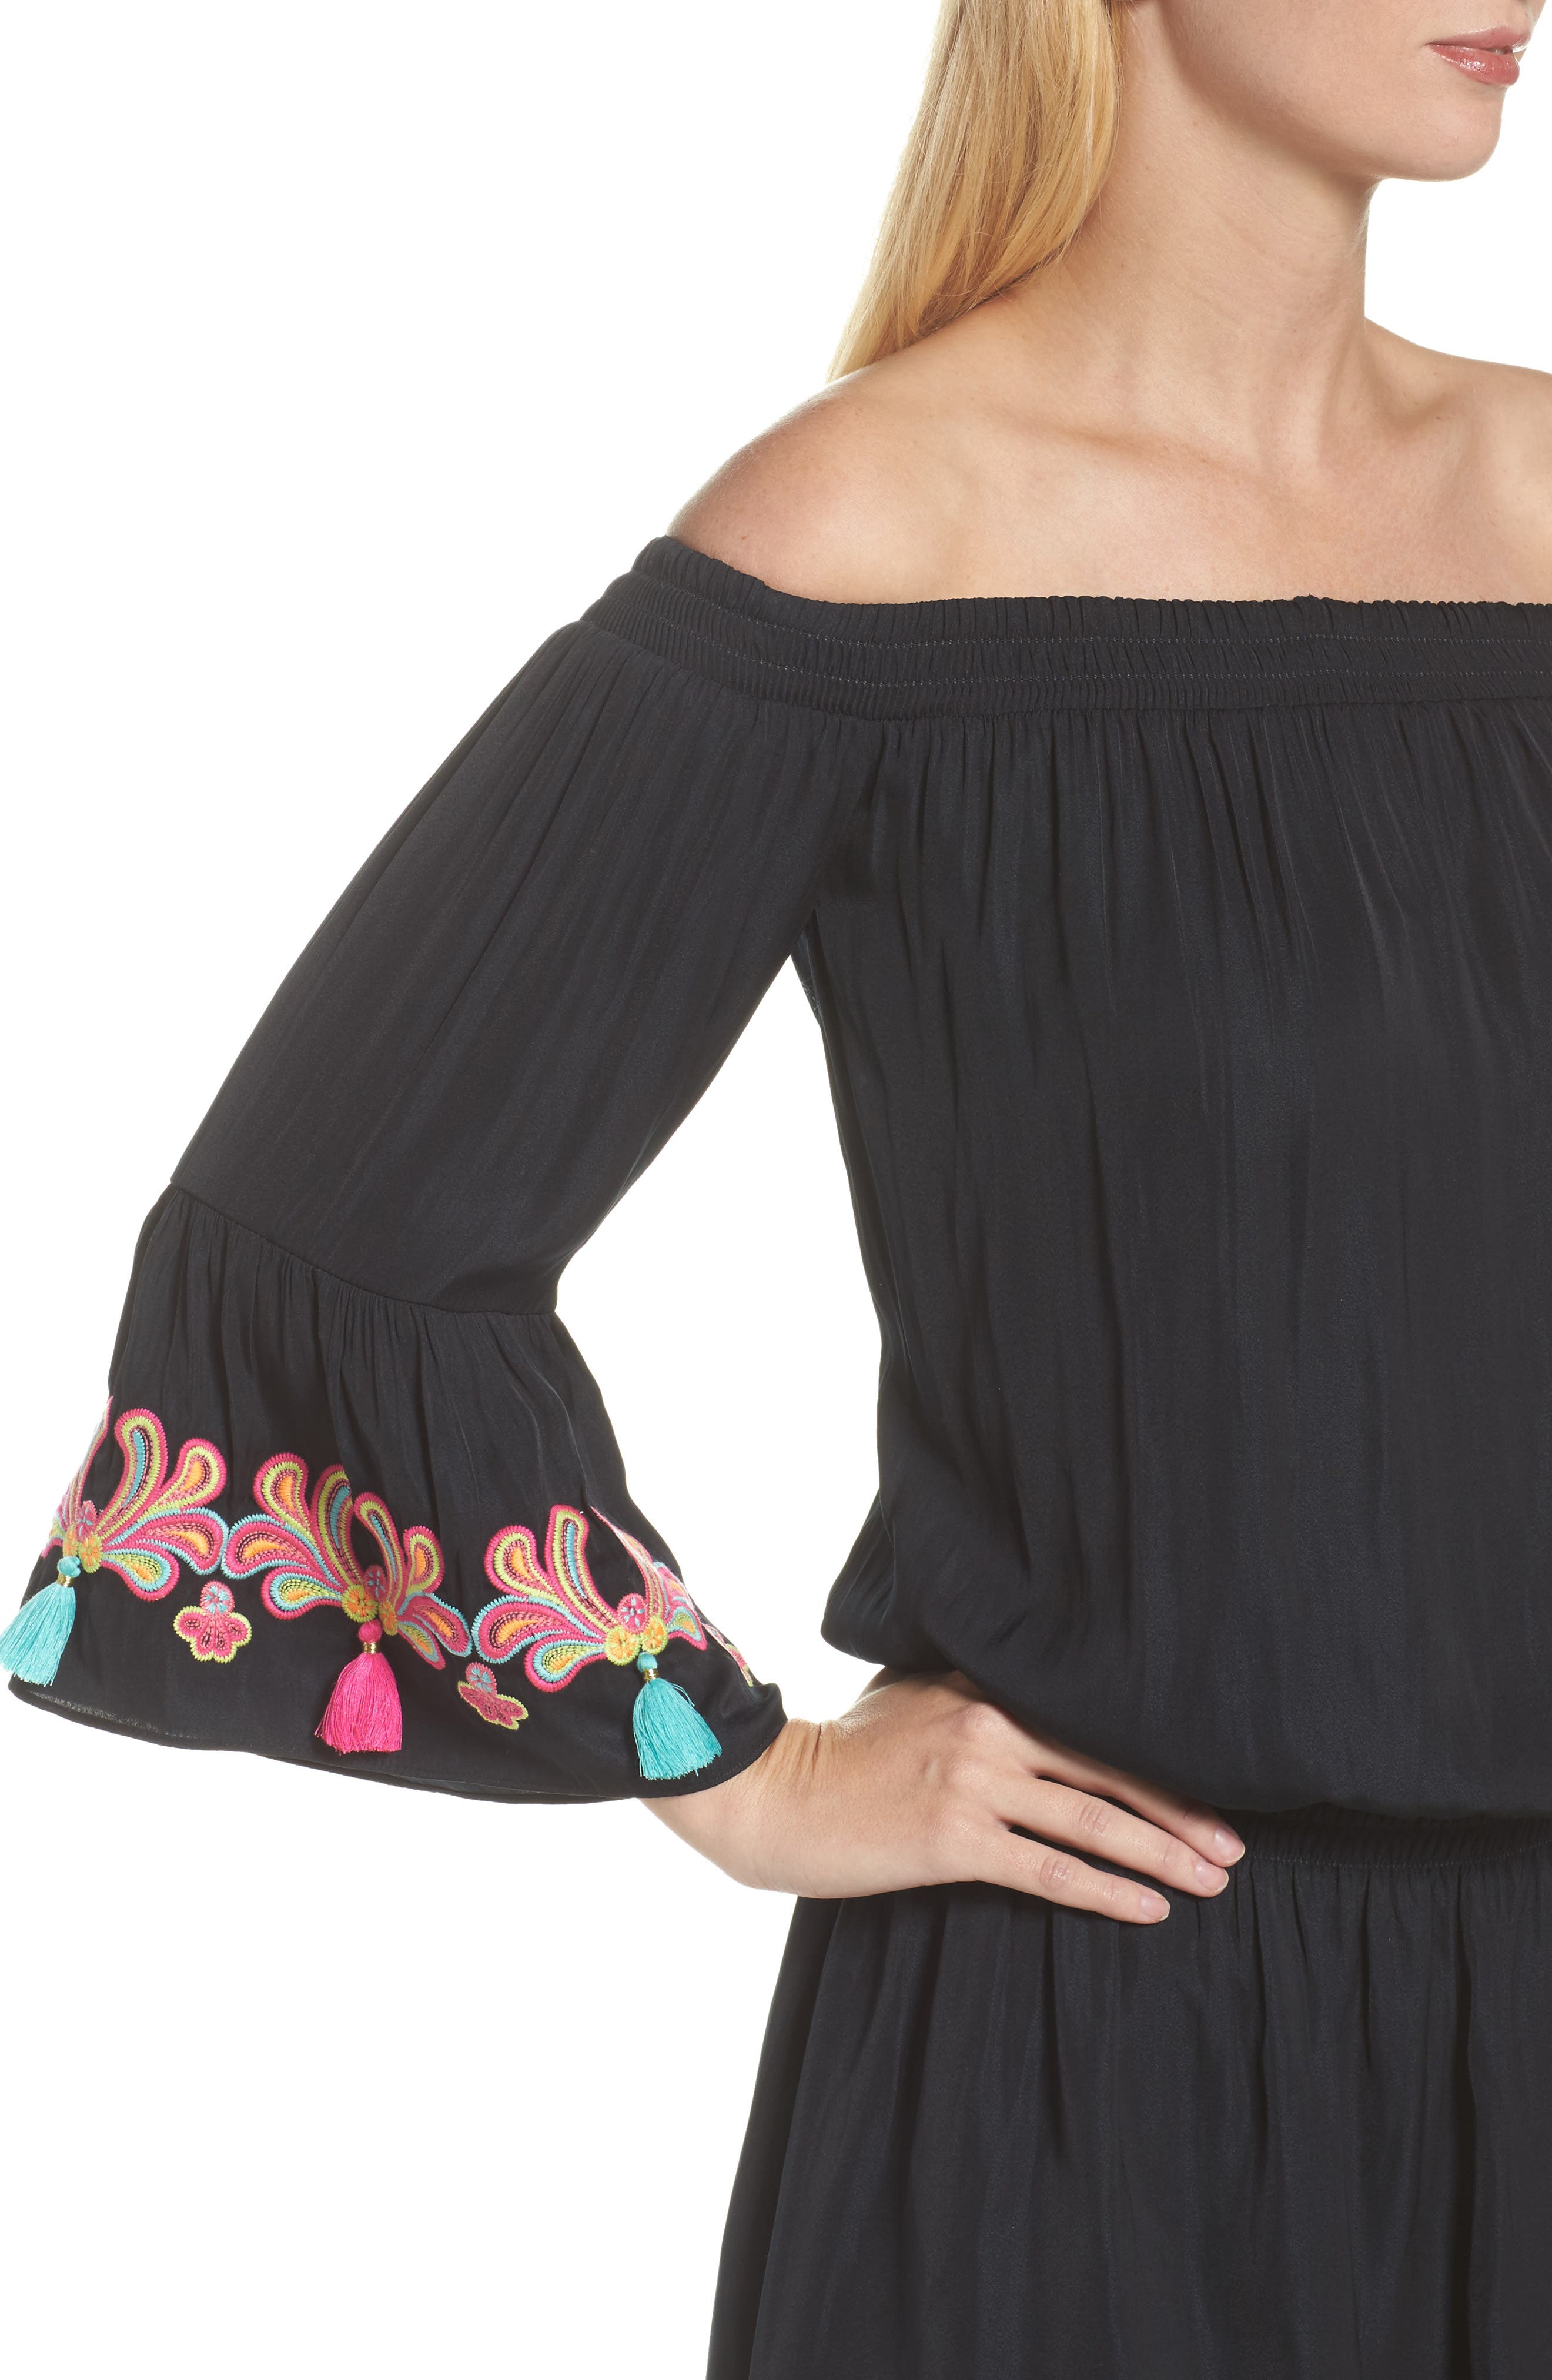 Polly Off the Shoulder Dress,                             Alternate thumbnail 4, color,                             002